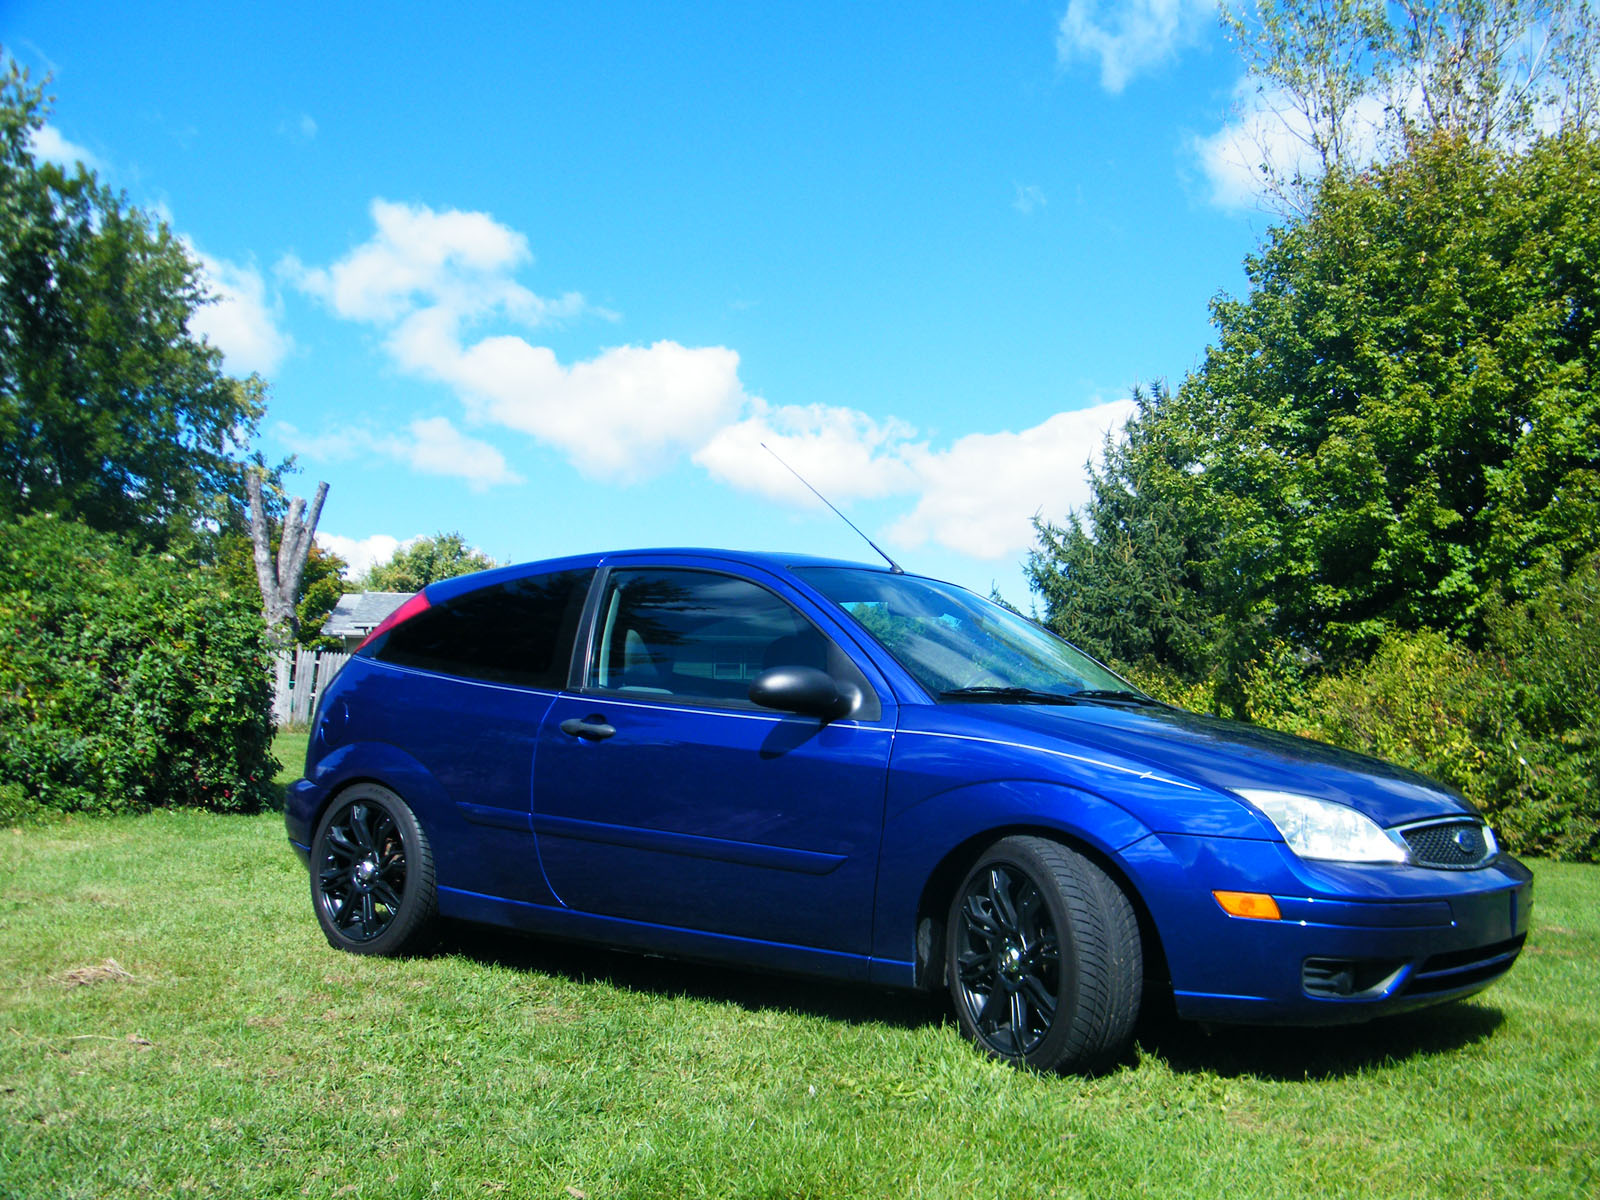 2005 ford focus zx3 for sale paw paw michigan. Black Bedroom Furniture Sets. Home Design Ideas